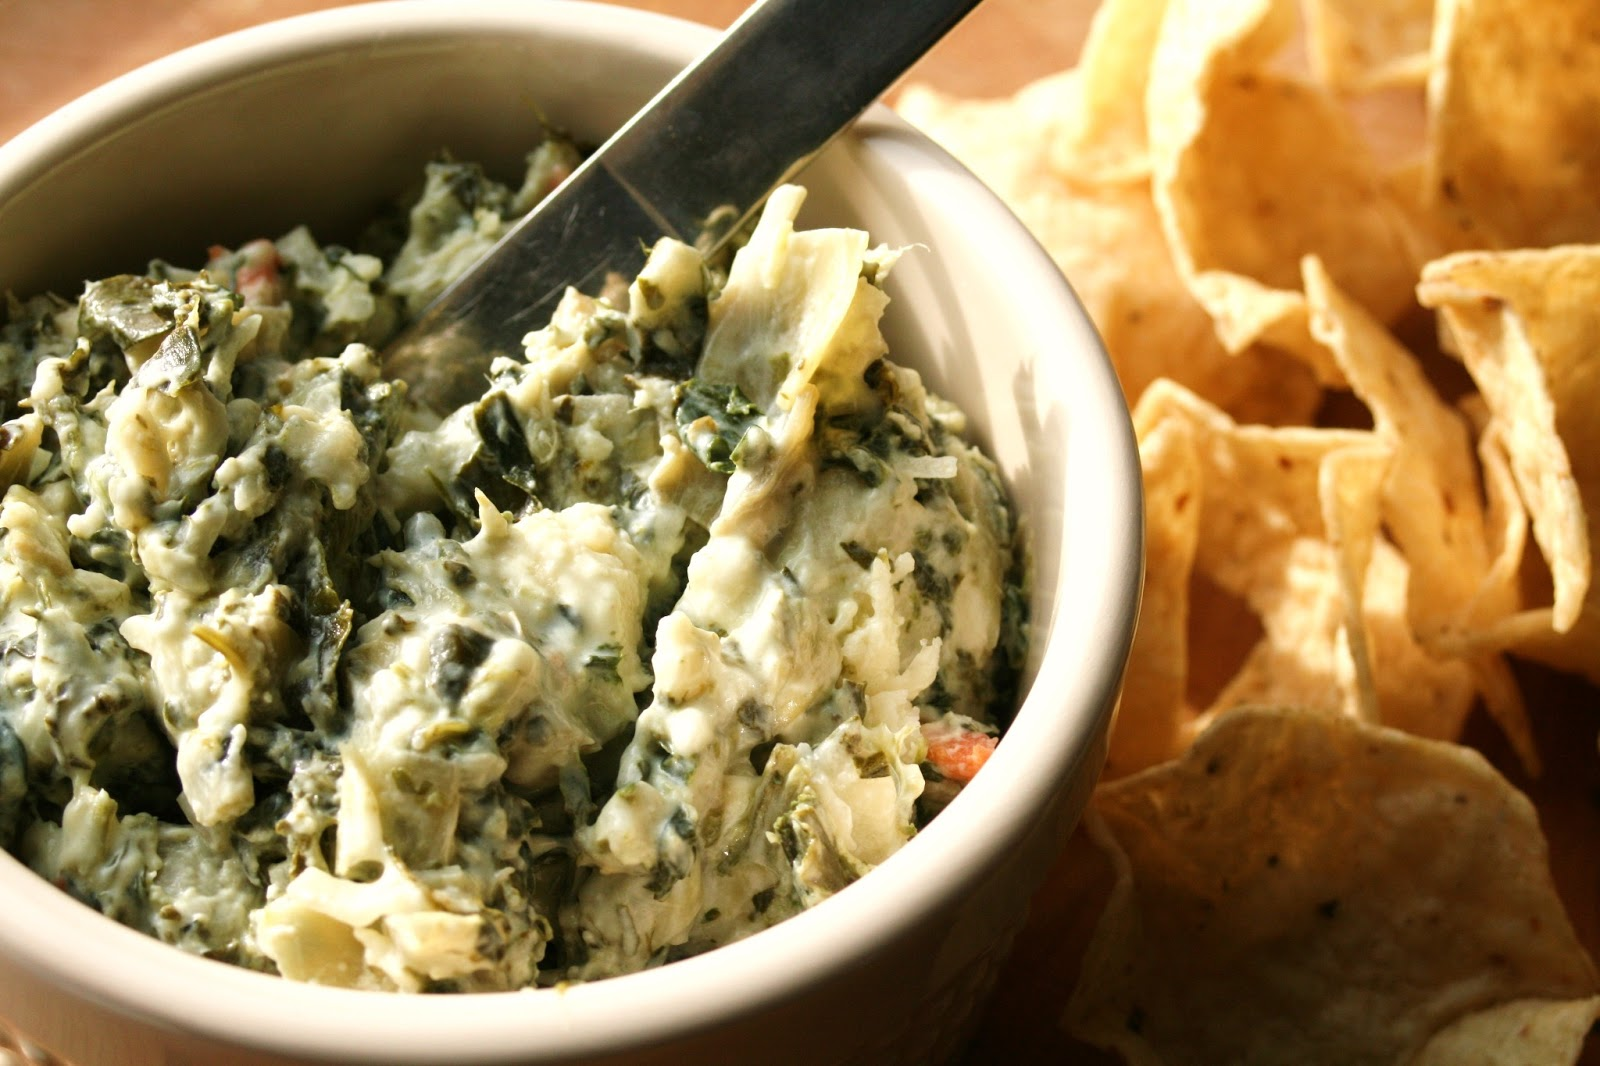 Thee Cook: Ooey Gooey Hot Spinach and Artichoke Dip